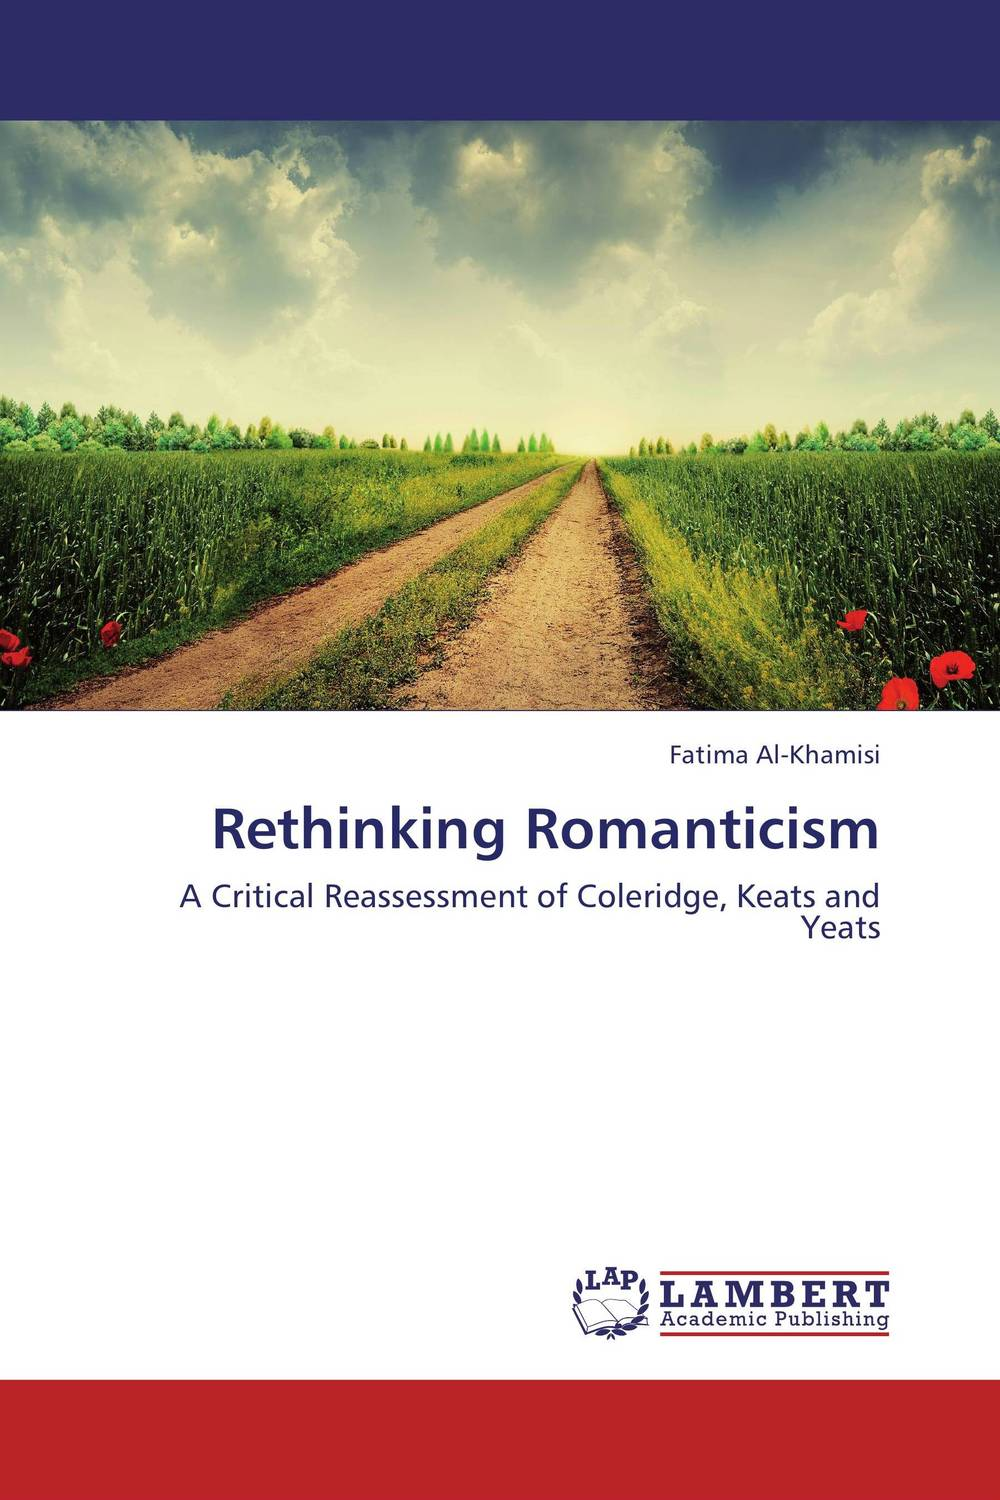 Rethinking Romanticism william butler yeats the collected works in verse and prose of william butler yeats volume 6 of 8 ideas of good and evil